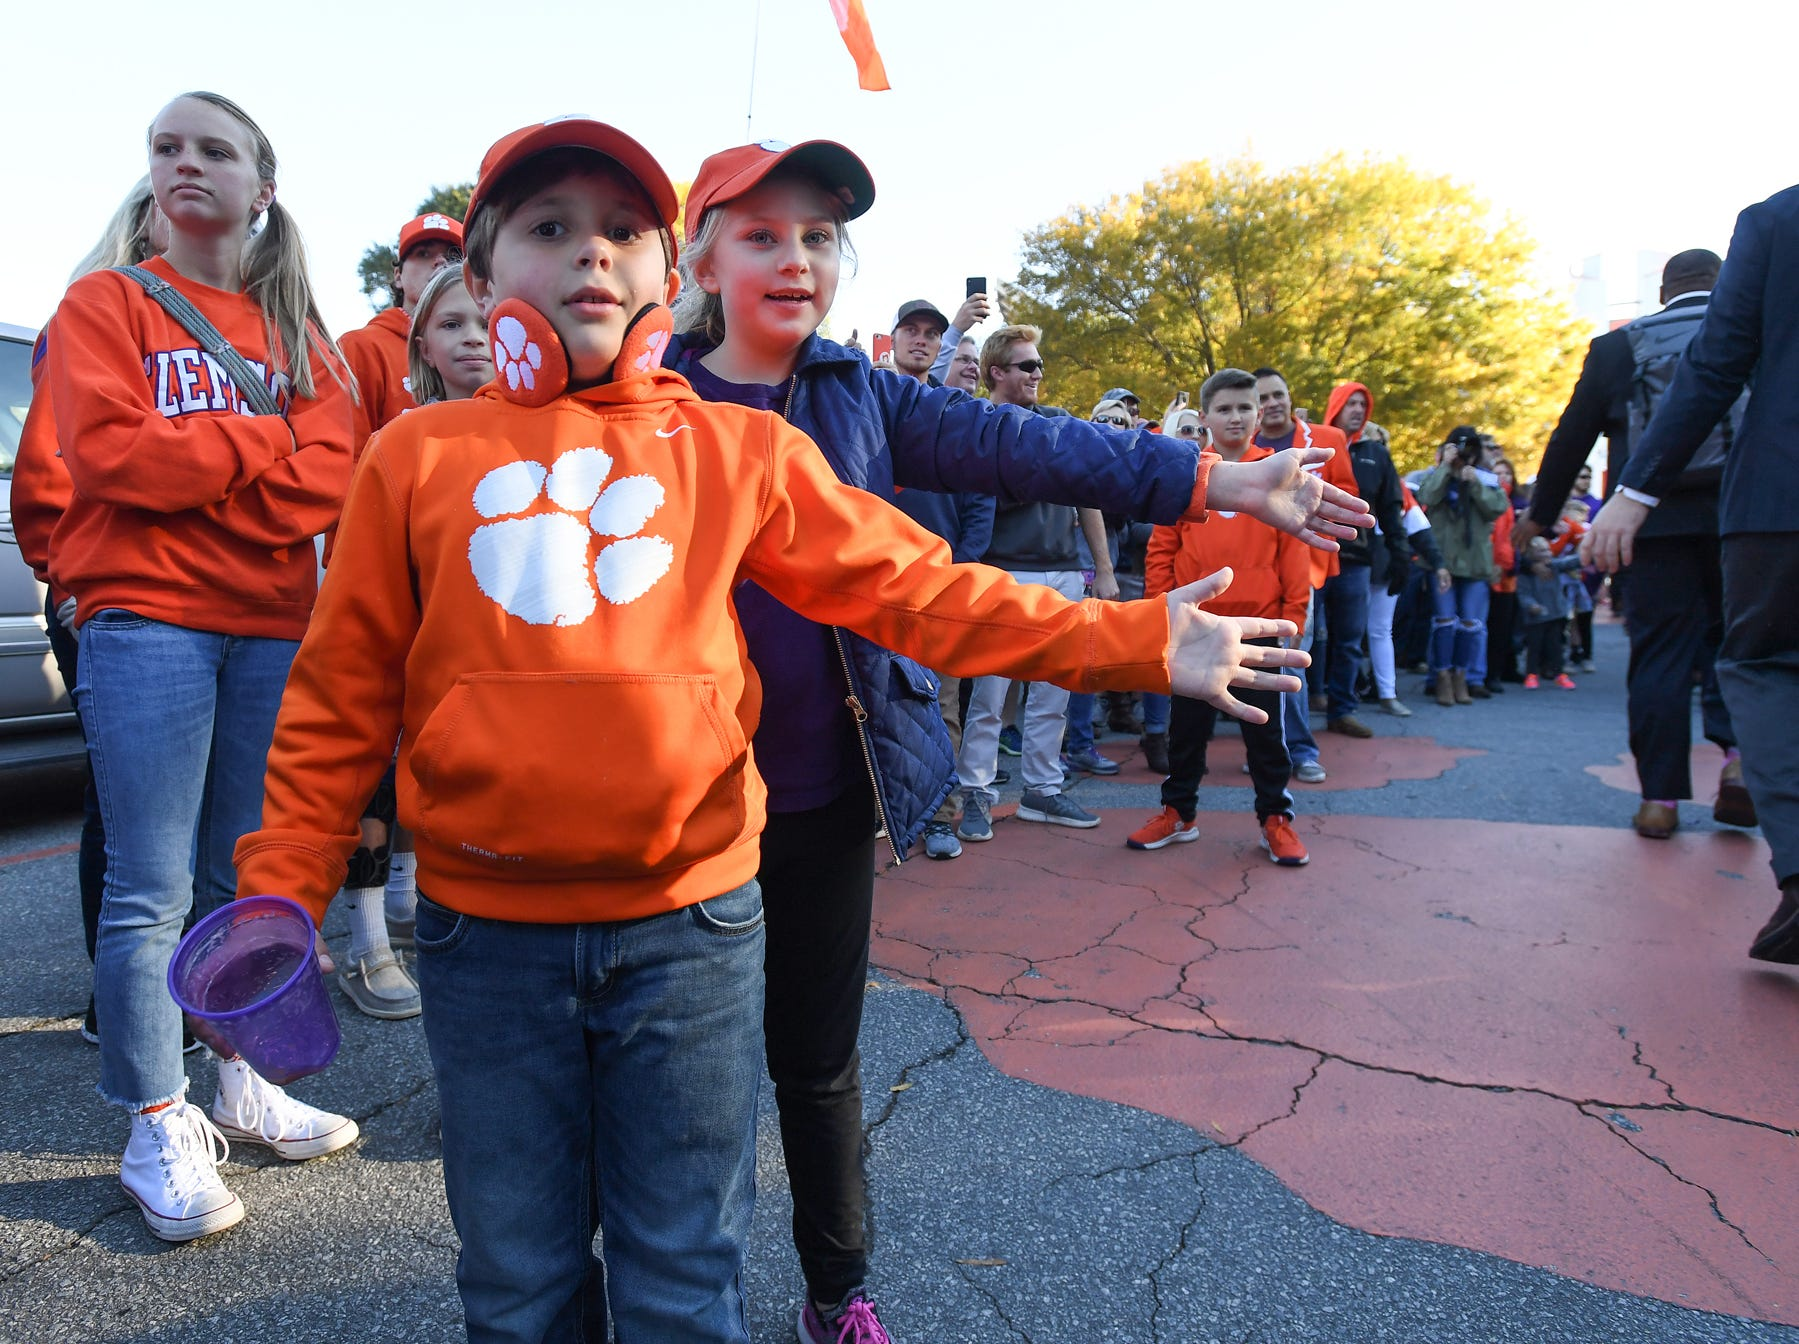 Clemson players and fans take part in Tiger Walk before the Tiger's game against Louisville Saturday, November 3, 2018 at Clemson's Memorial Stadium.